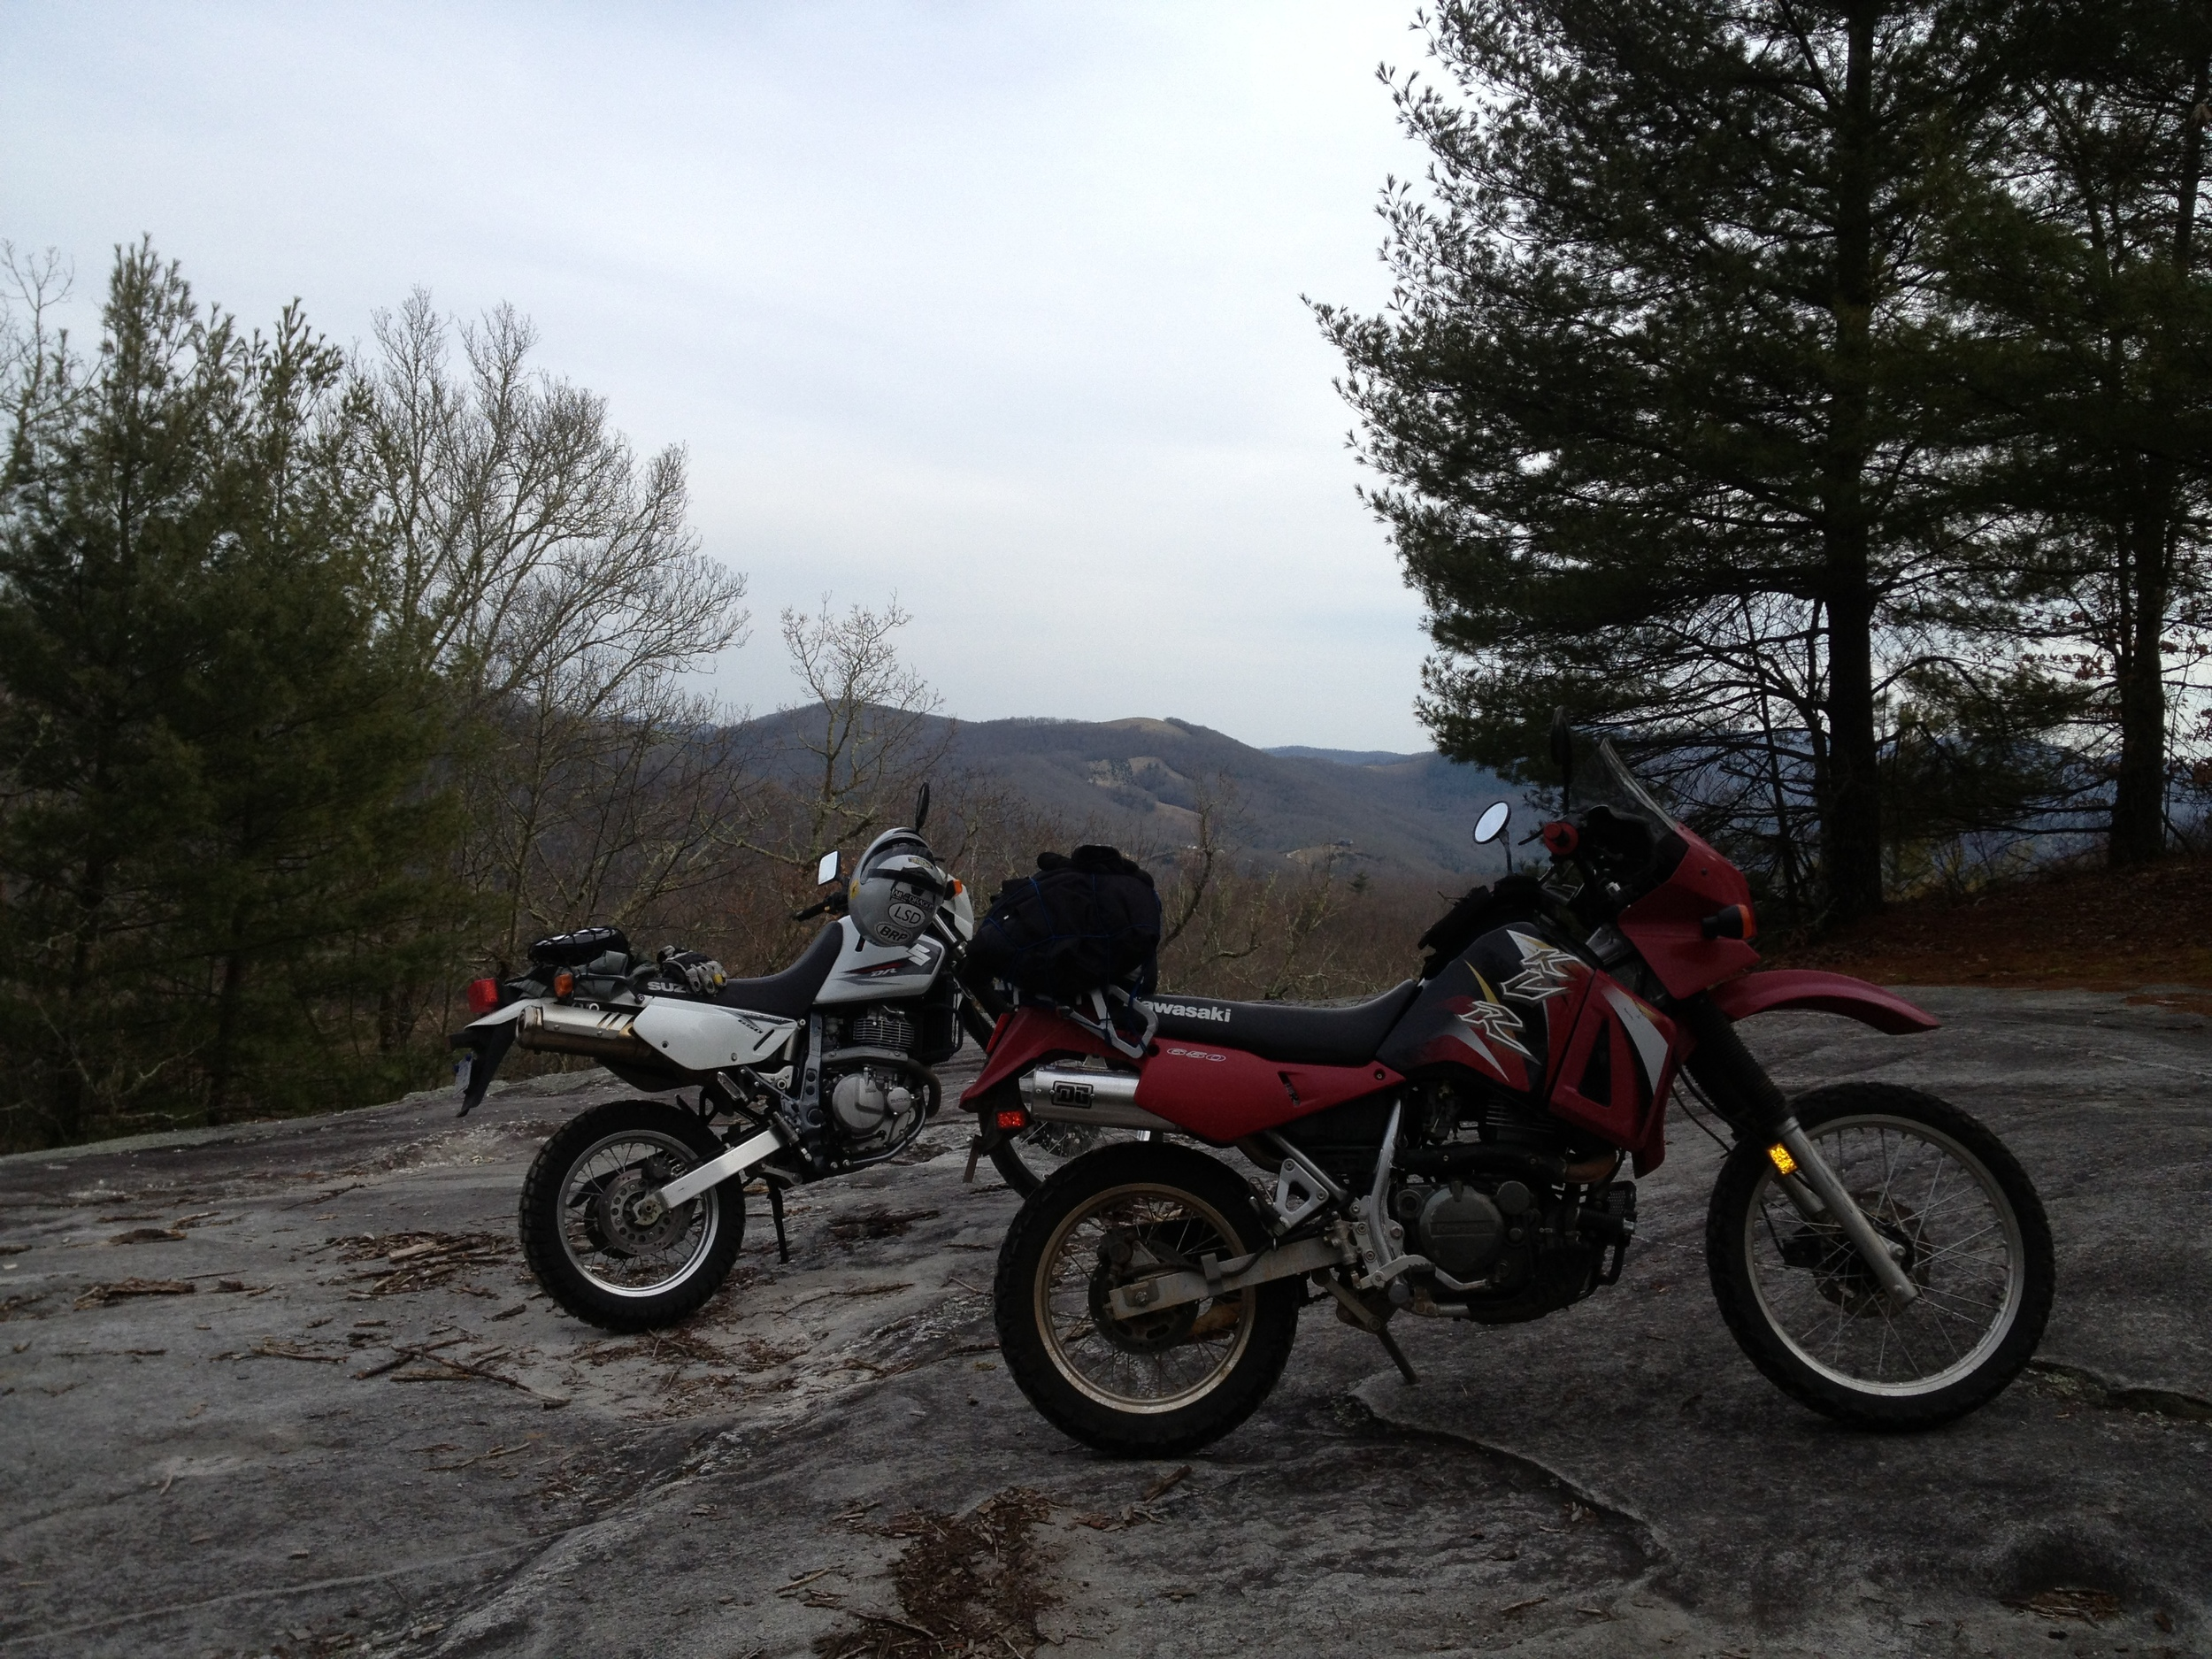 Bikes on the rock